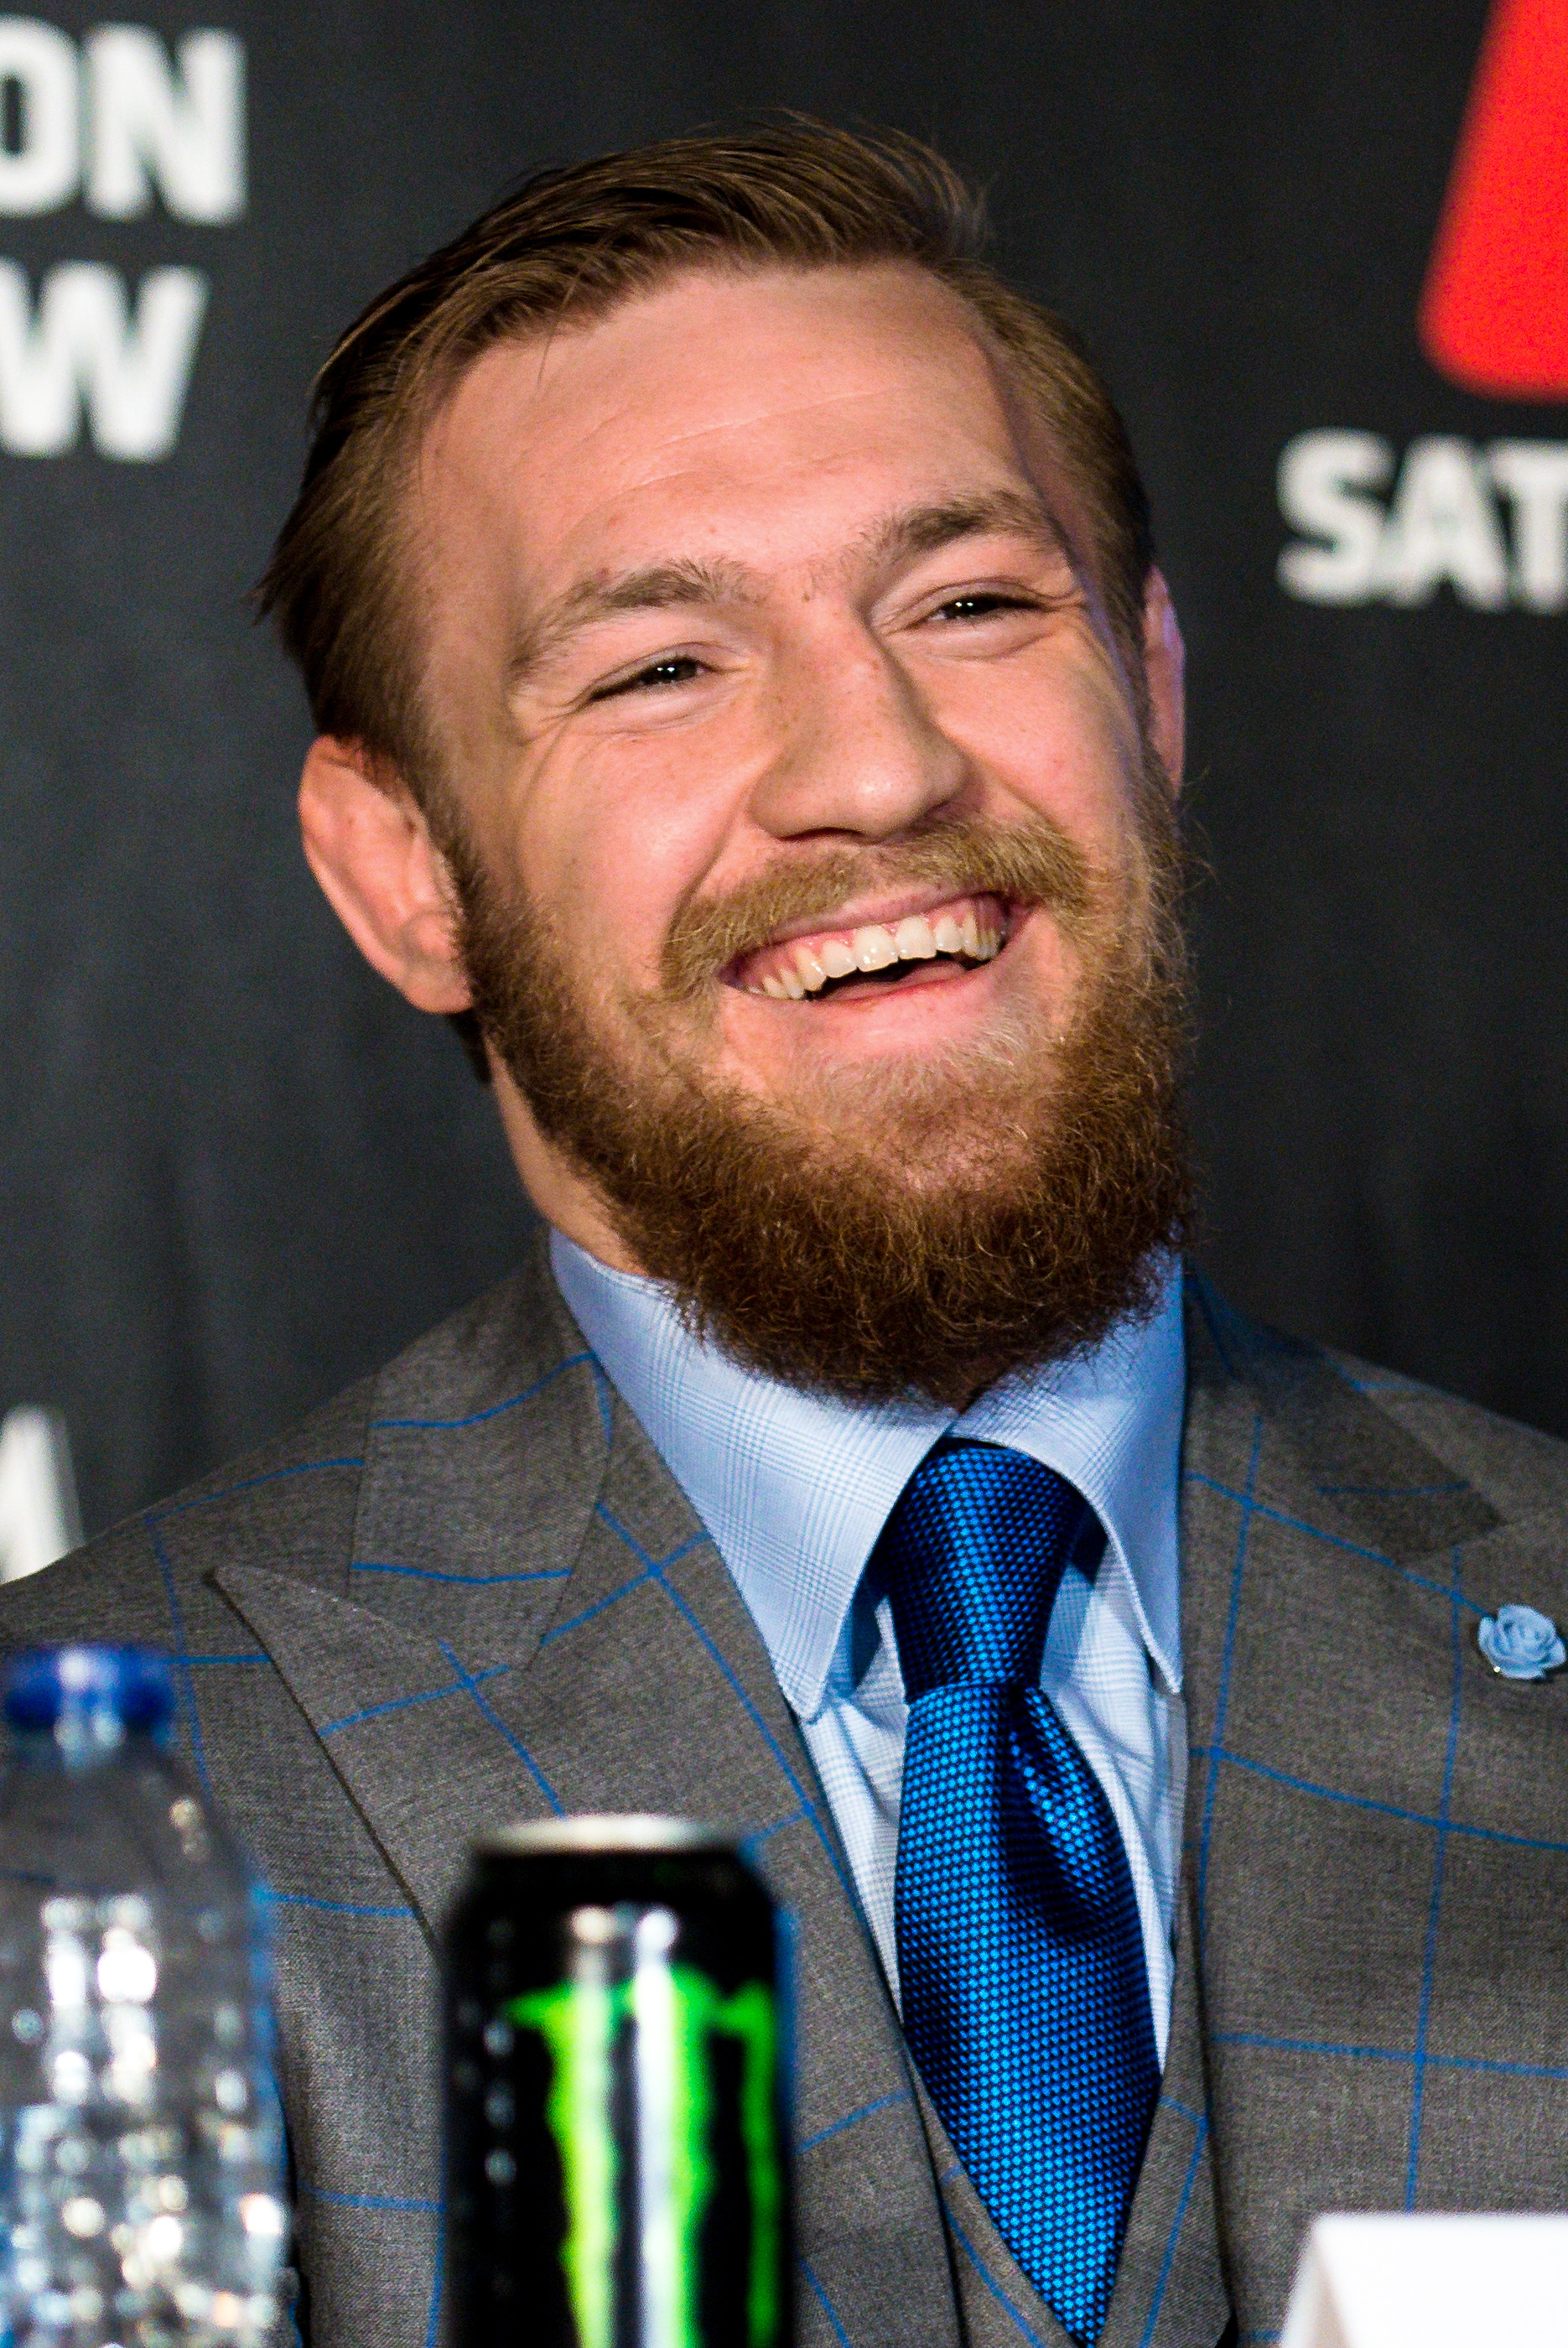 5 Powerful Life Lessons To Learn From Conor McGregor